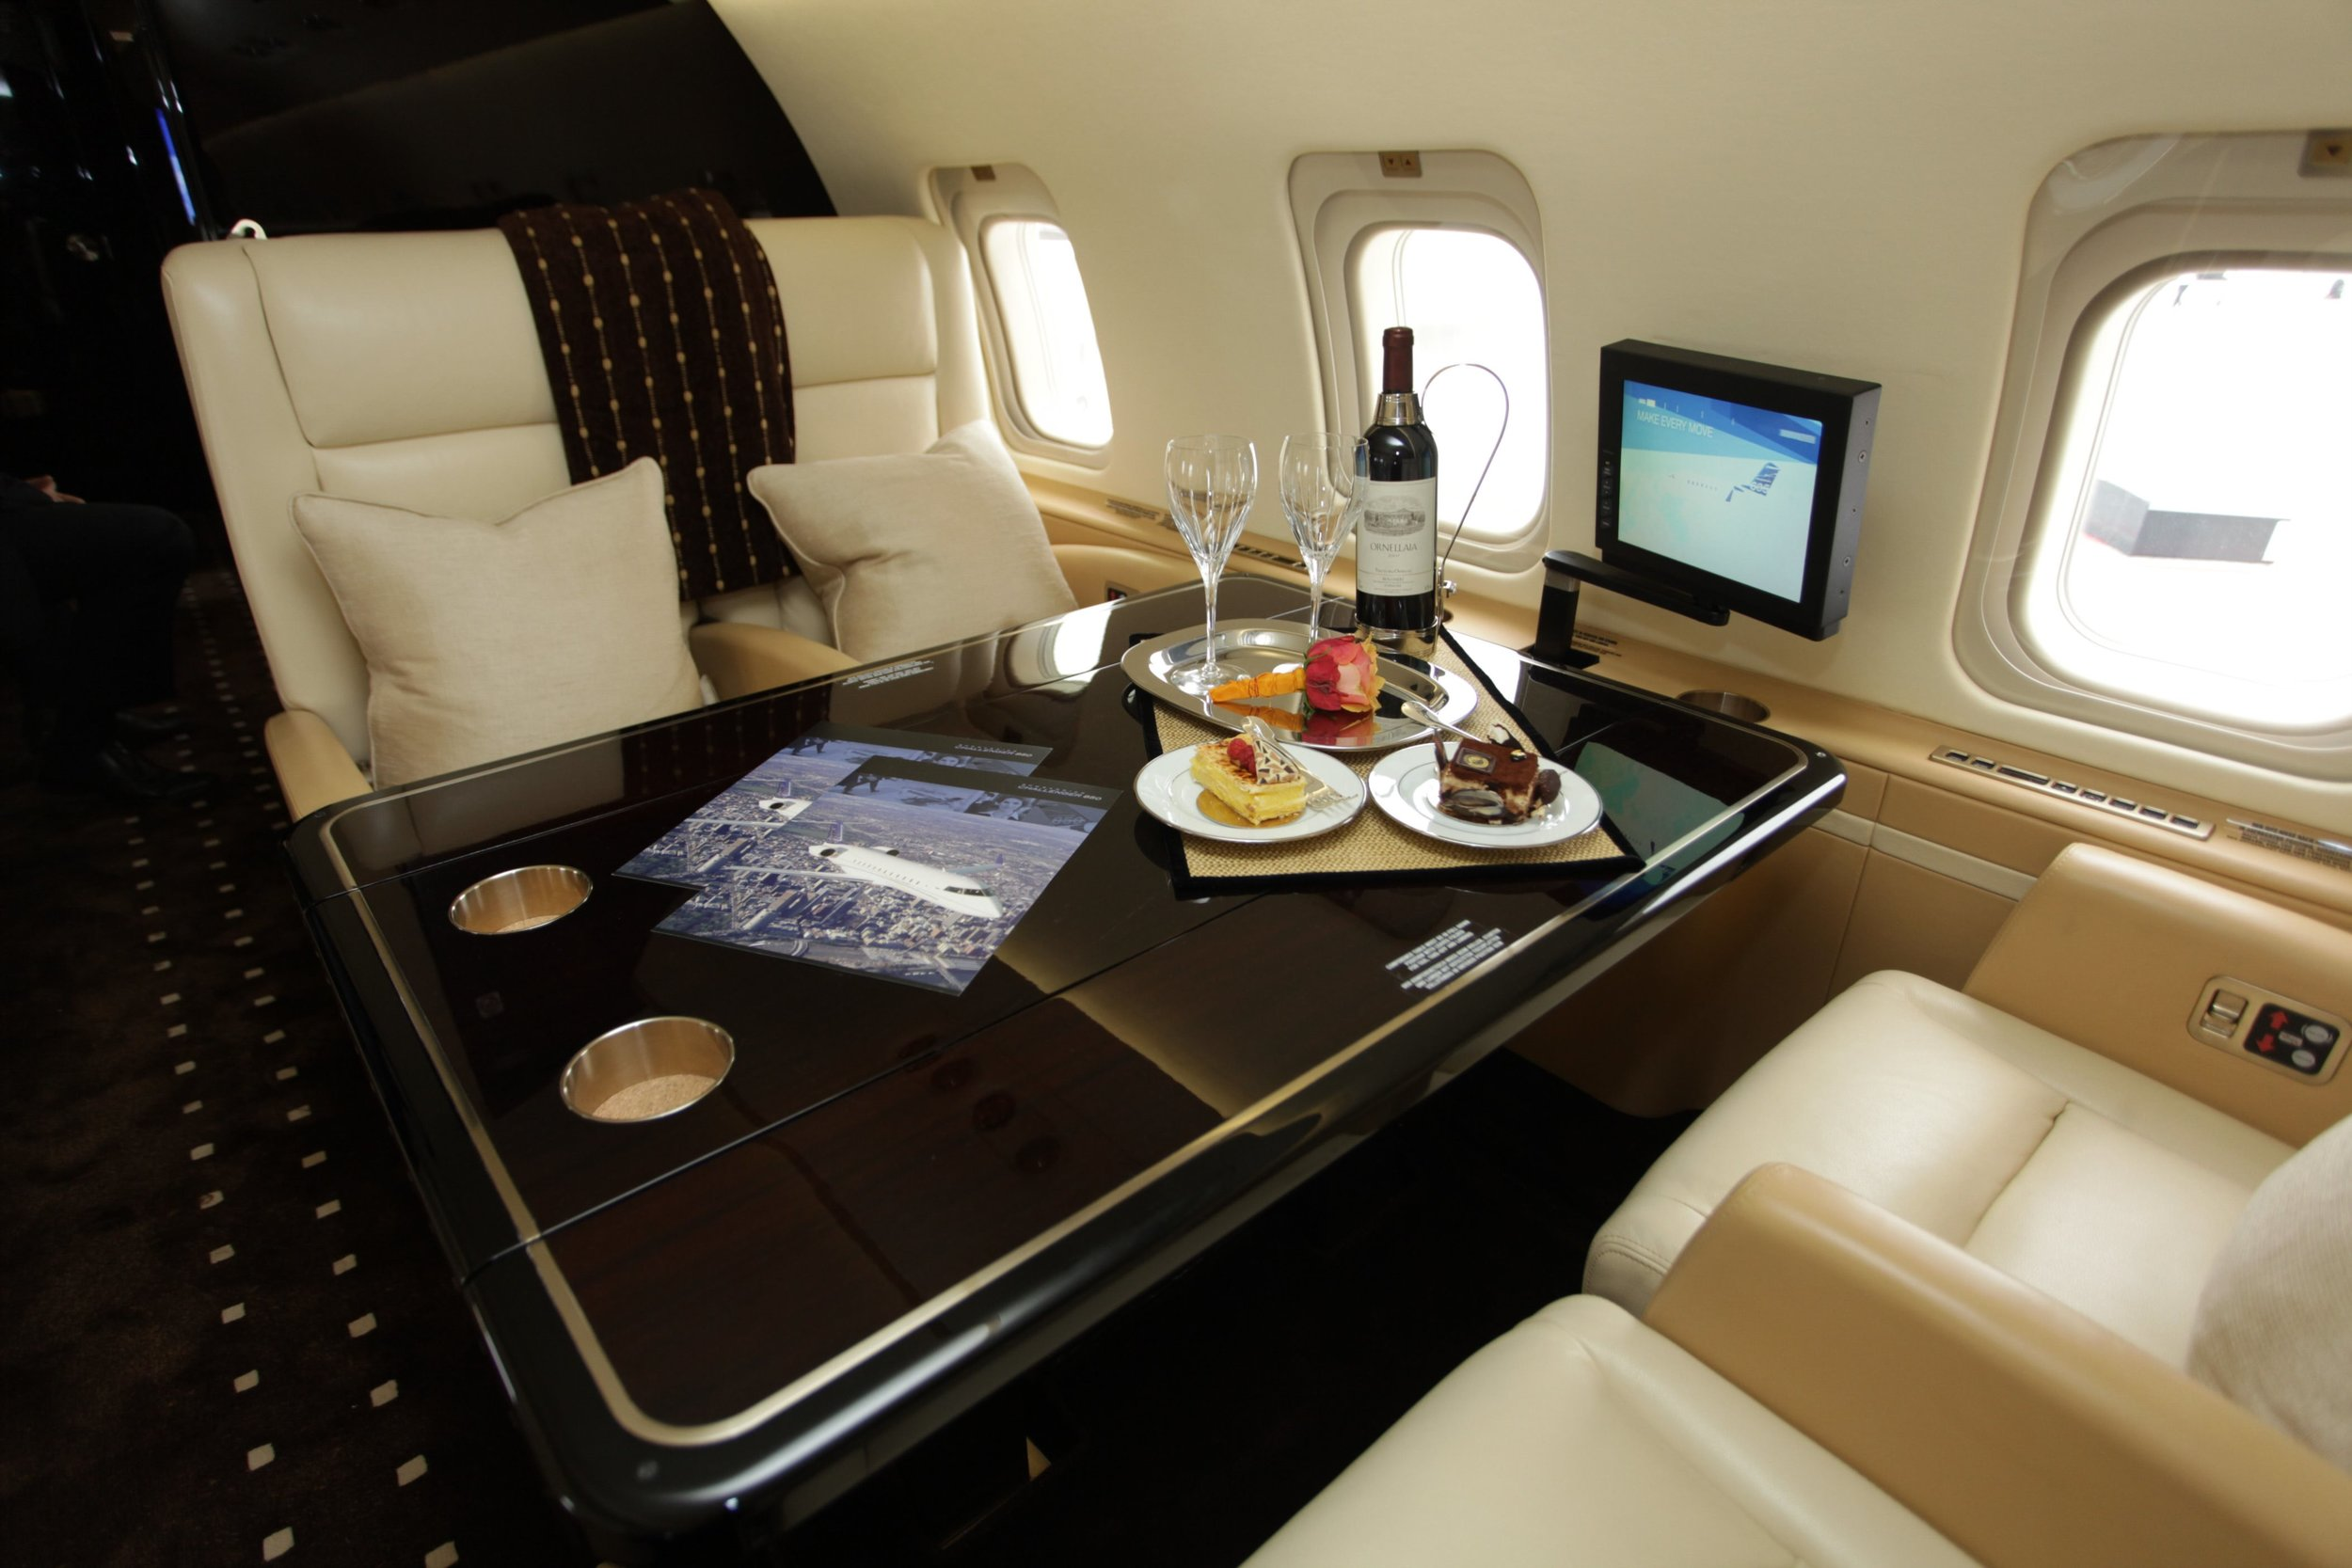 The Gulfstream G650 will fly you in VIP luxurious style